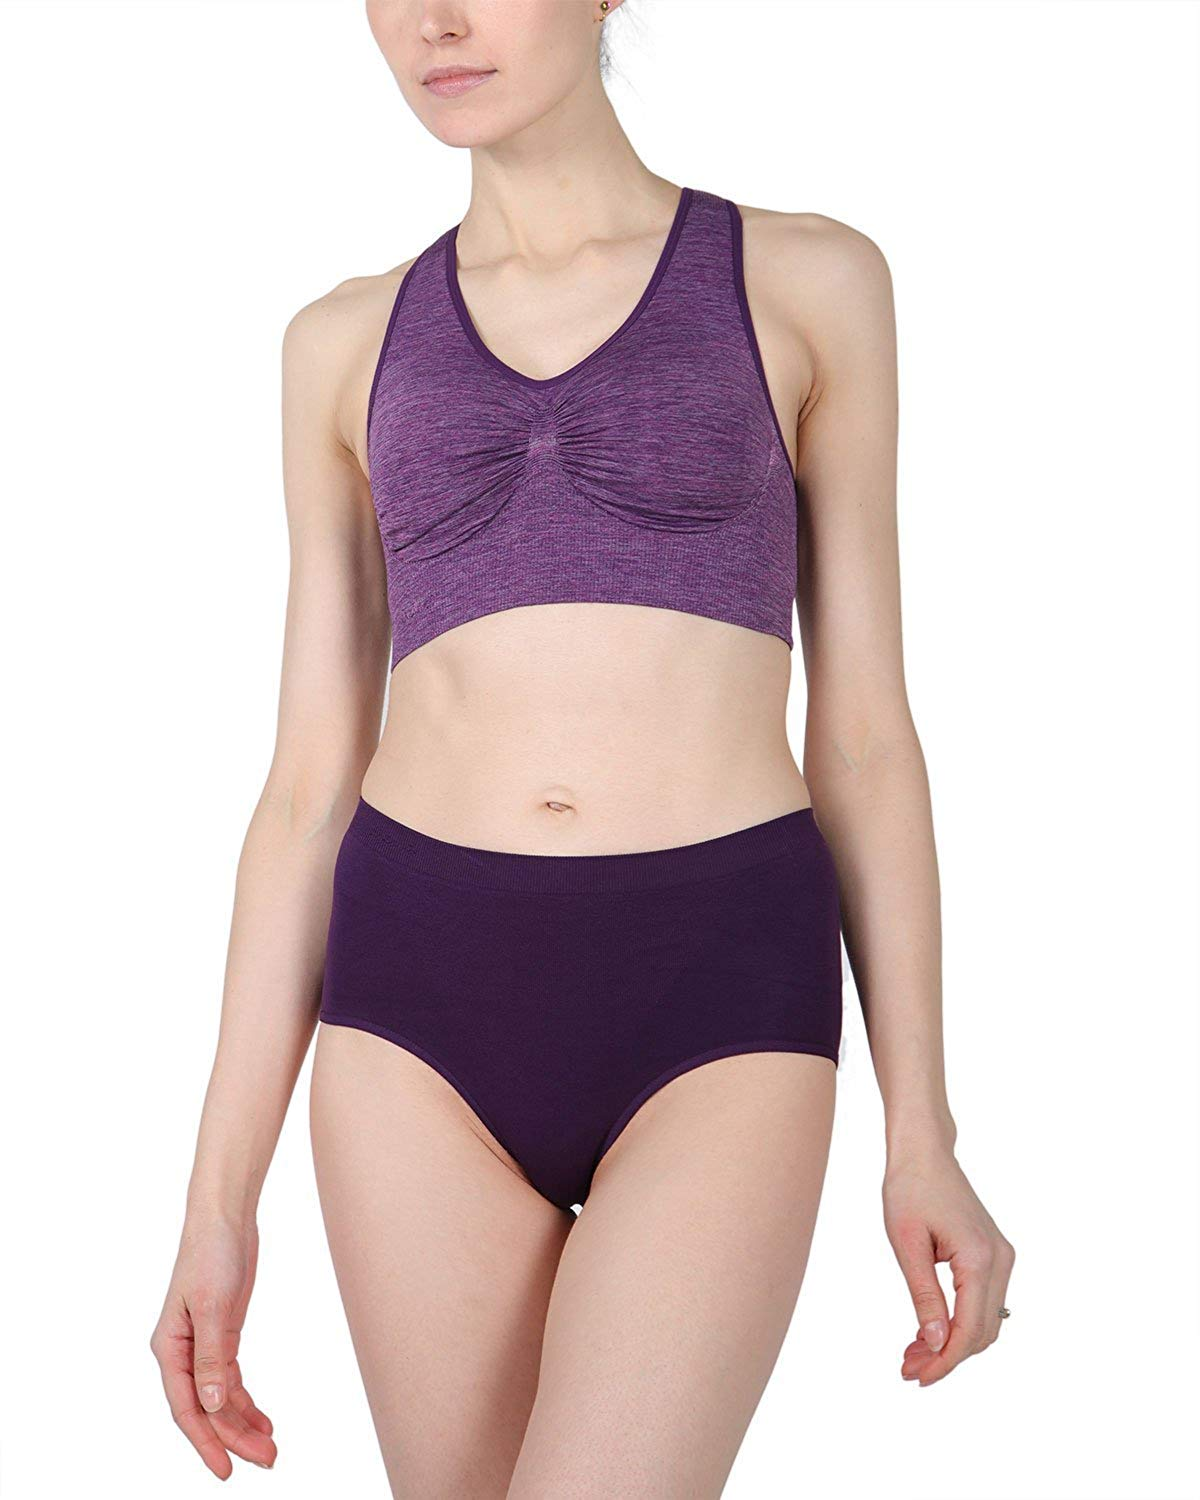 008b93903af64 Cheap Bra And Spandex, find Bra And Spandex deals on line at Alibaba.com